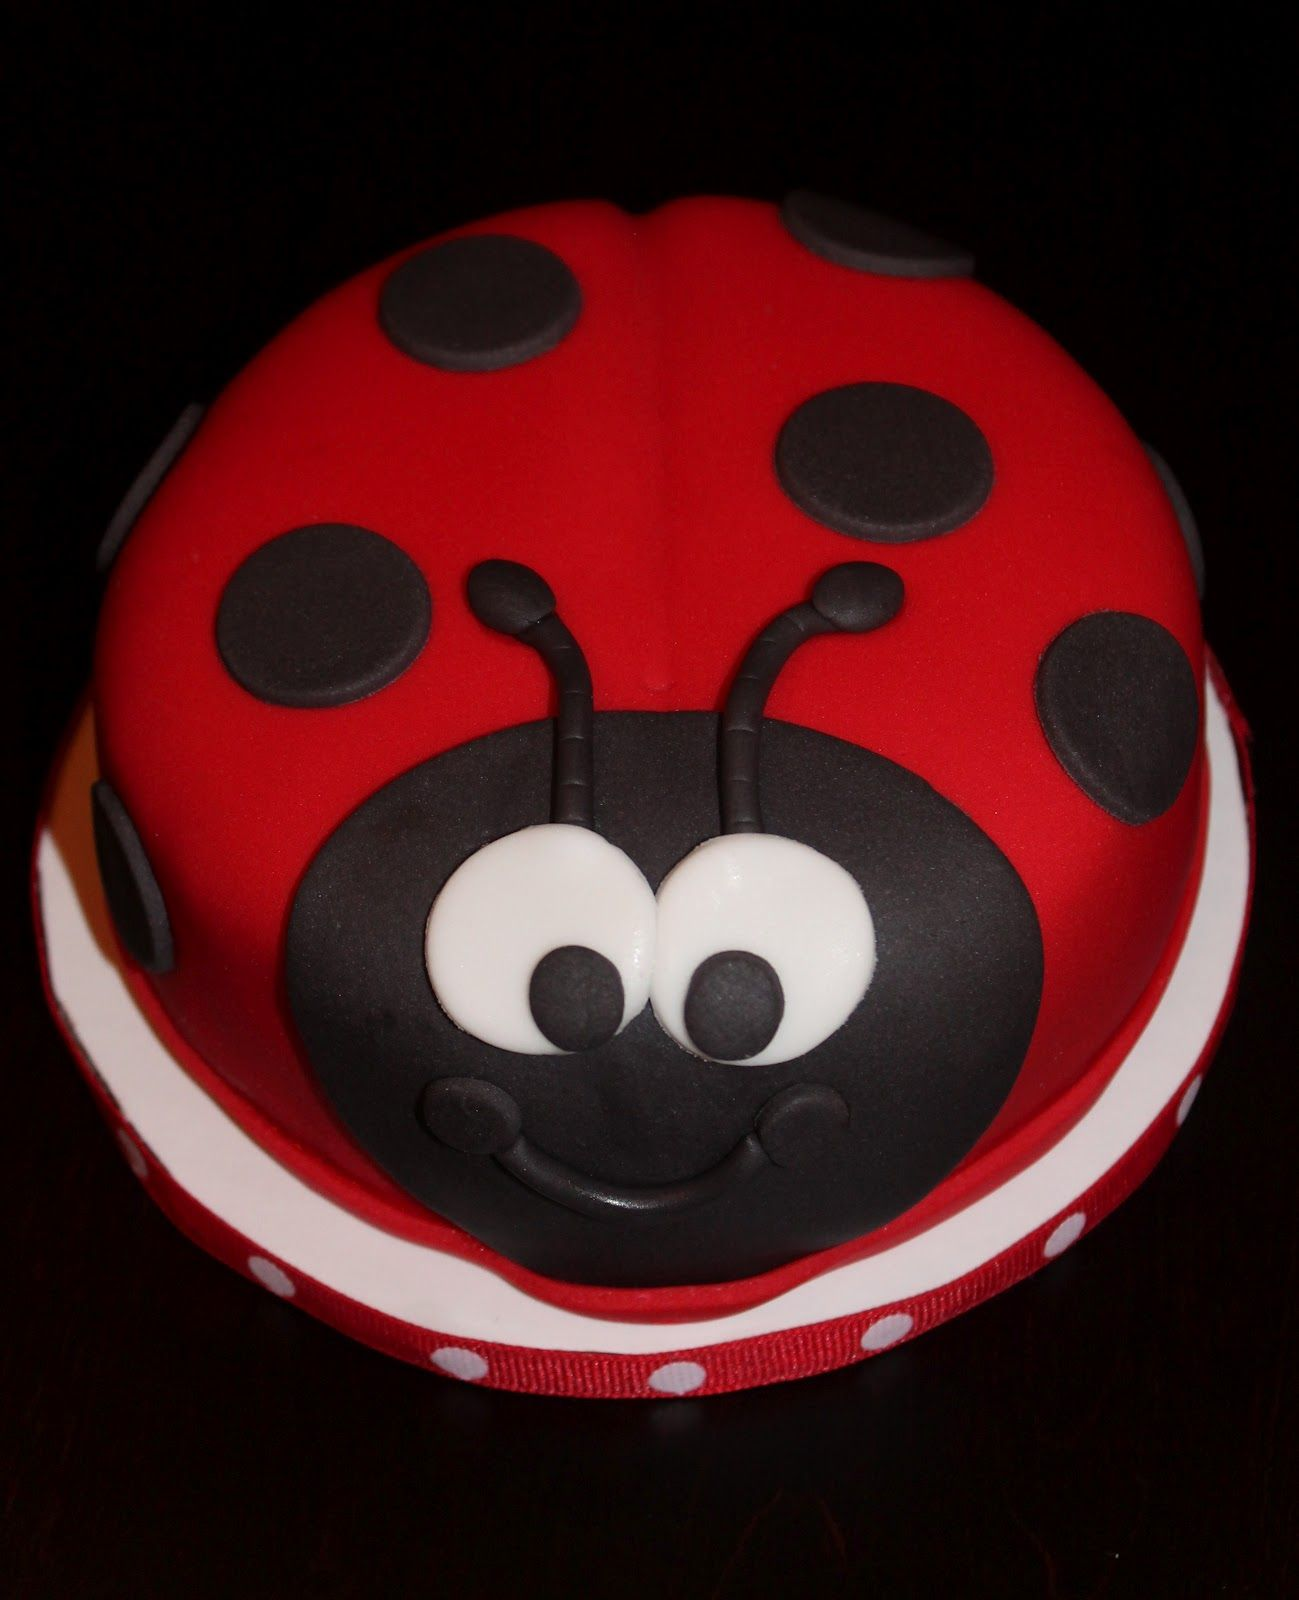 Cute Cakes on Pinterest Ladybug Cakes, Coffee Cups and ...